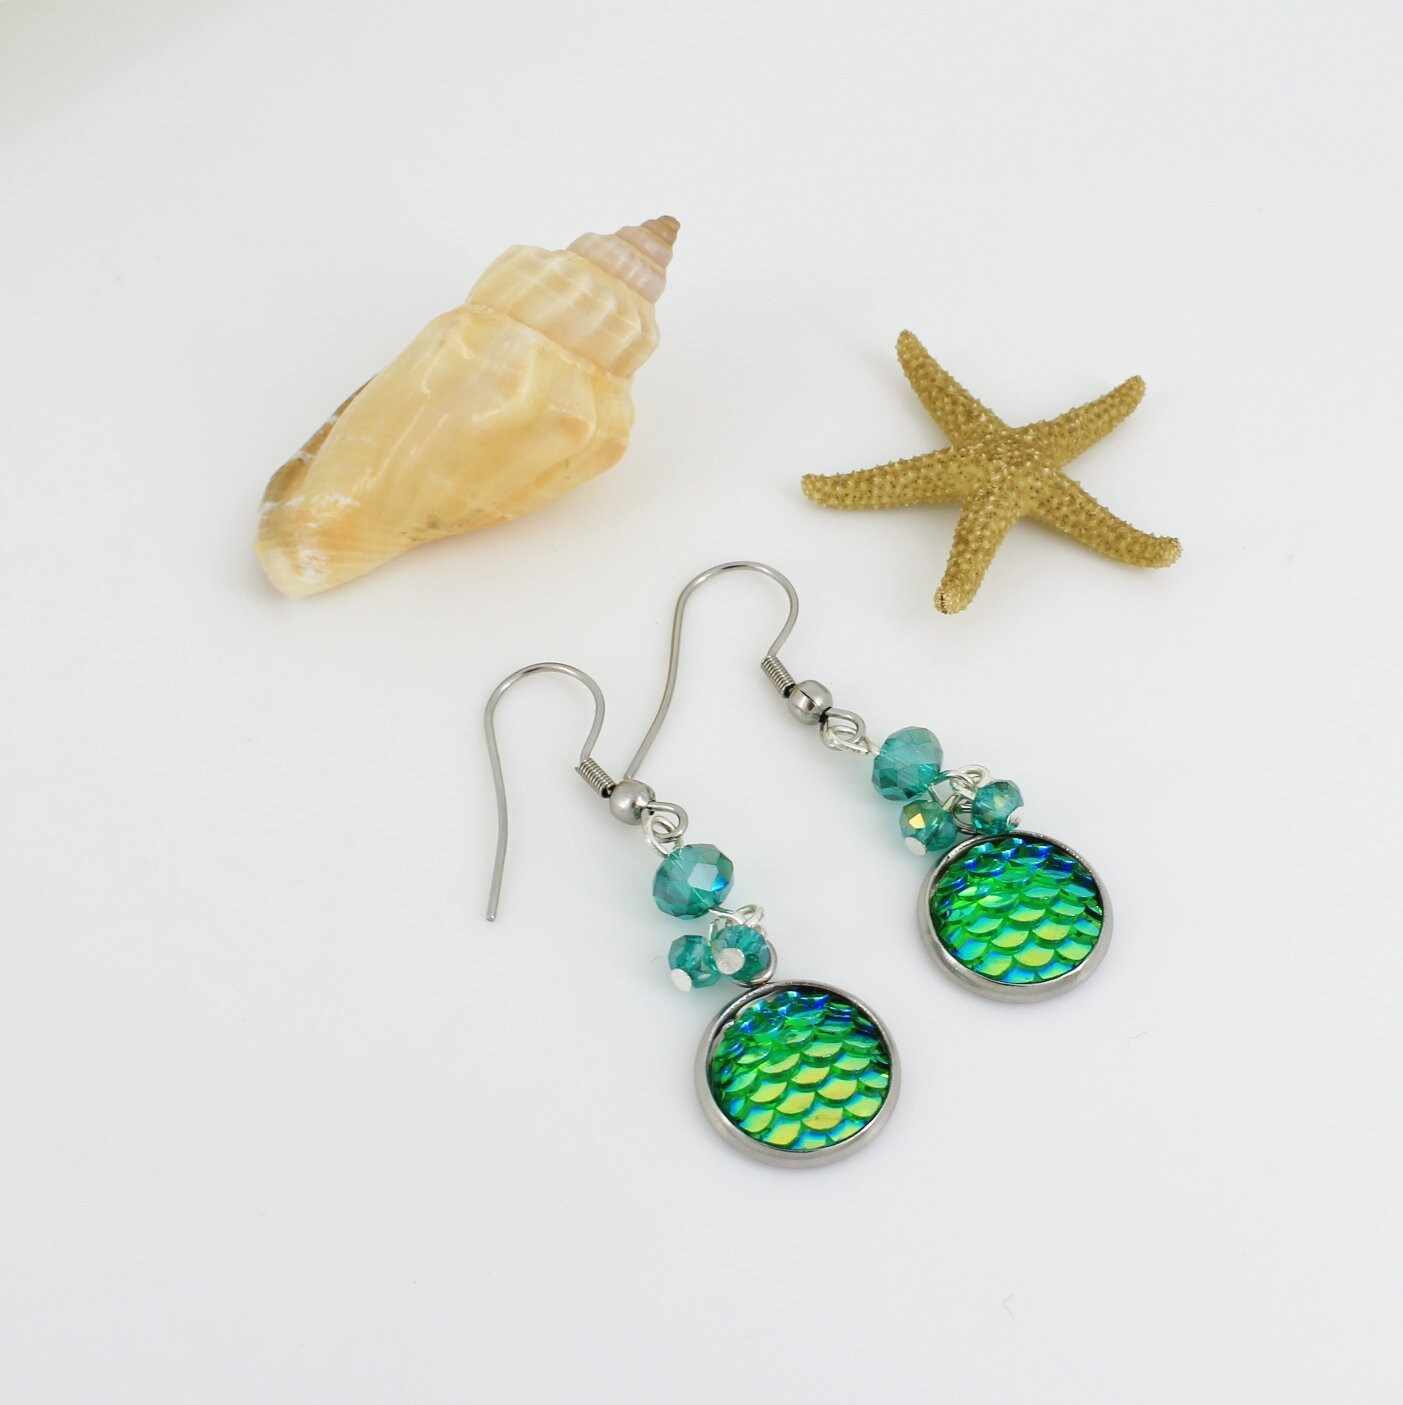 Mermaid earrings, Fish scale earrings - product images  of